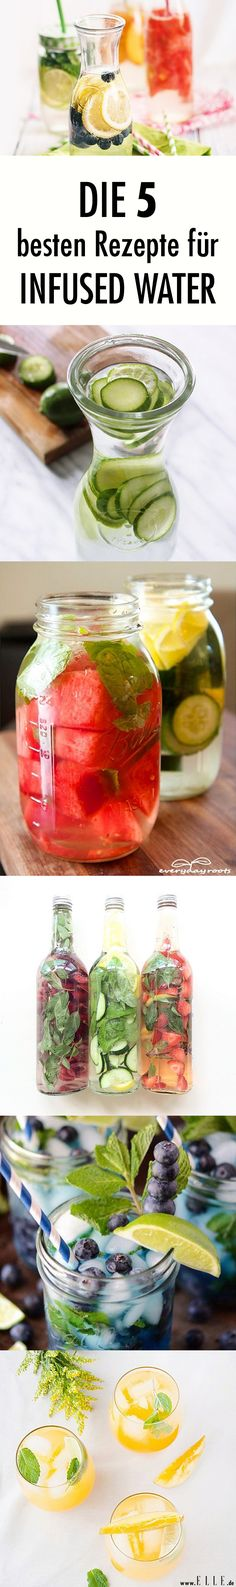 Infused Water: 5 recipe ideas for the water with flavor - Ernährung: Gesunde und leckere Rezepte - Gesundes Essen Best Smoothie, Smoothie Detox, Smoothie Drinks, Detox Drinks, Smoothie Mixer, Healthy Eating Tips, Healthy Nutrition, Healthy Drinks, Clean Eating